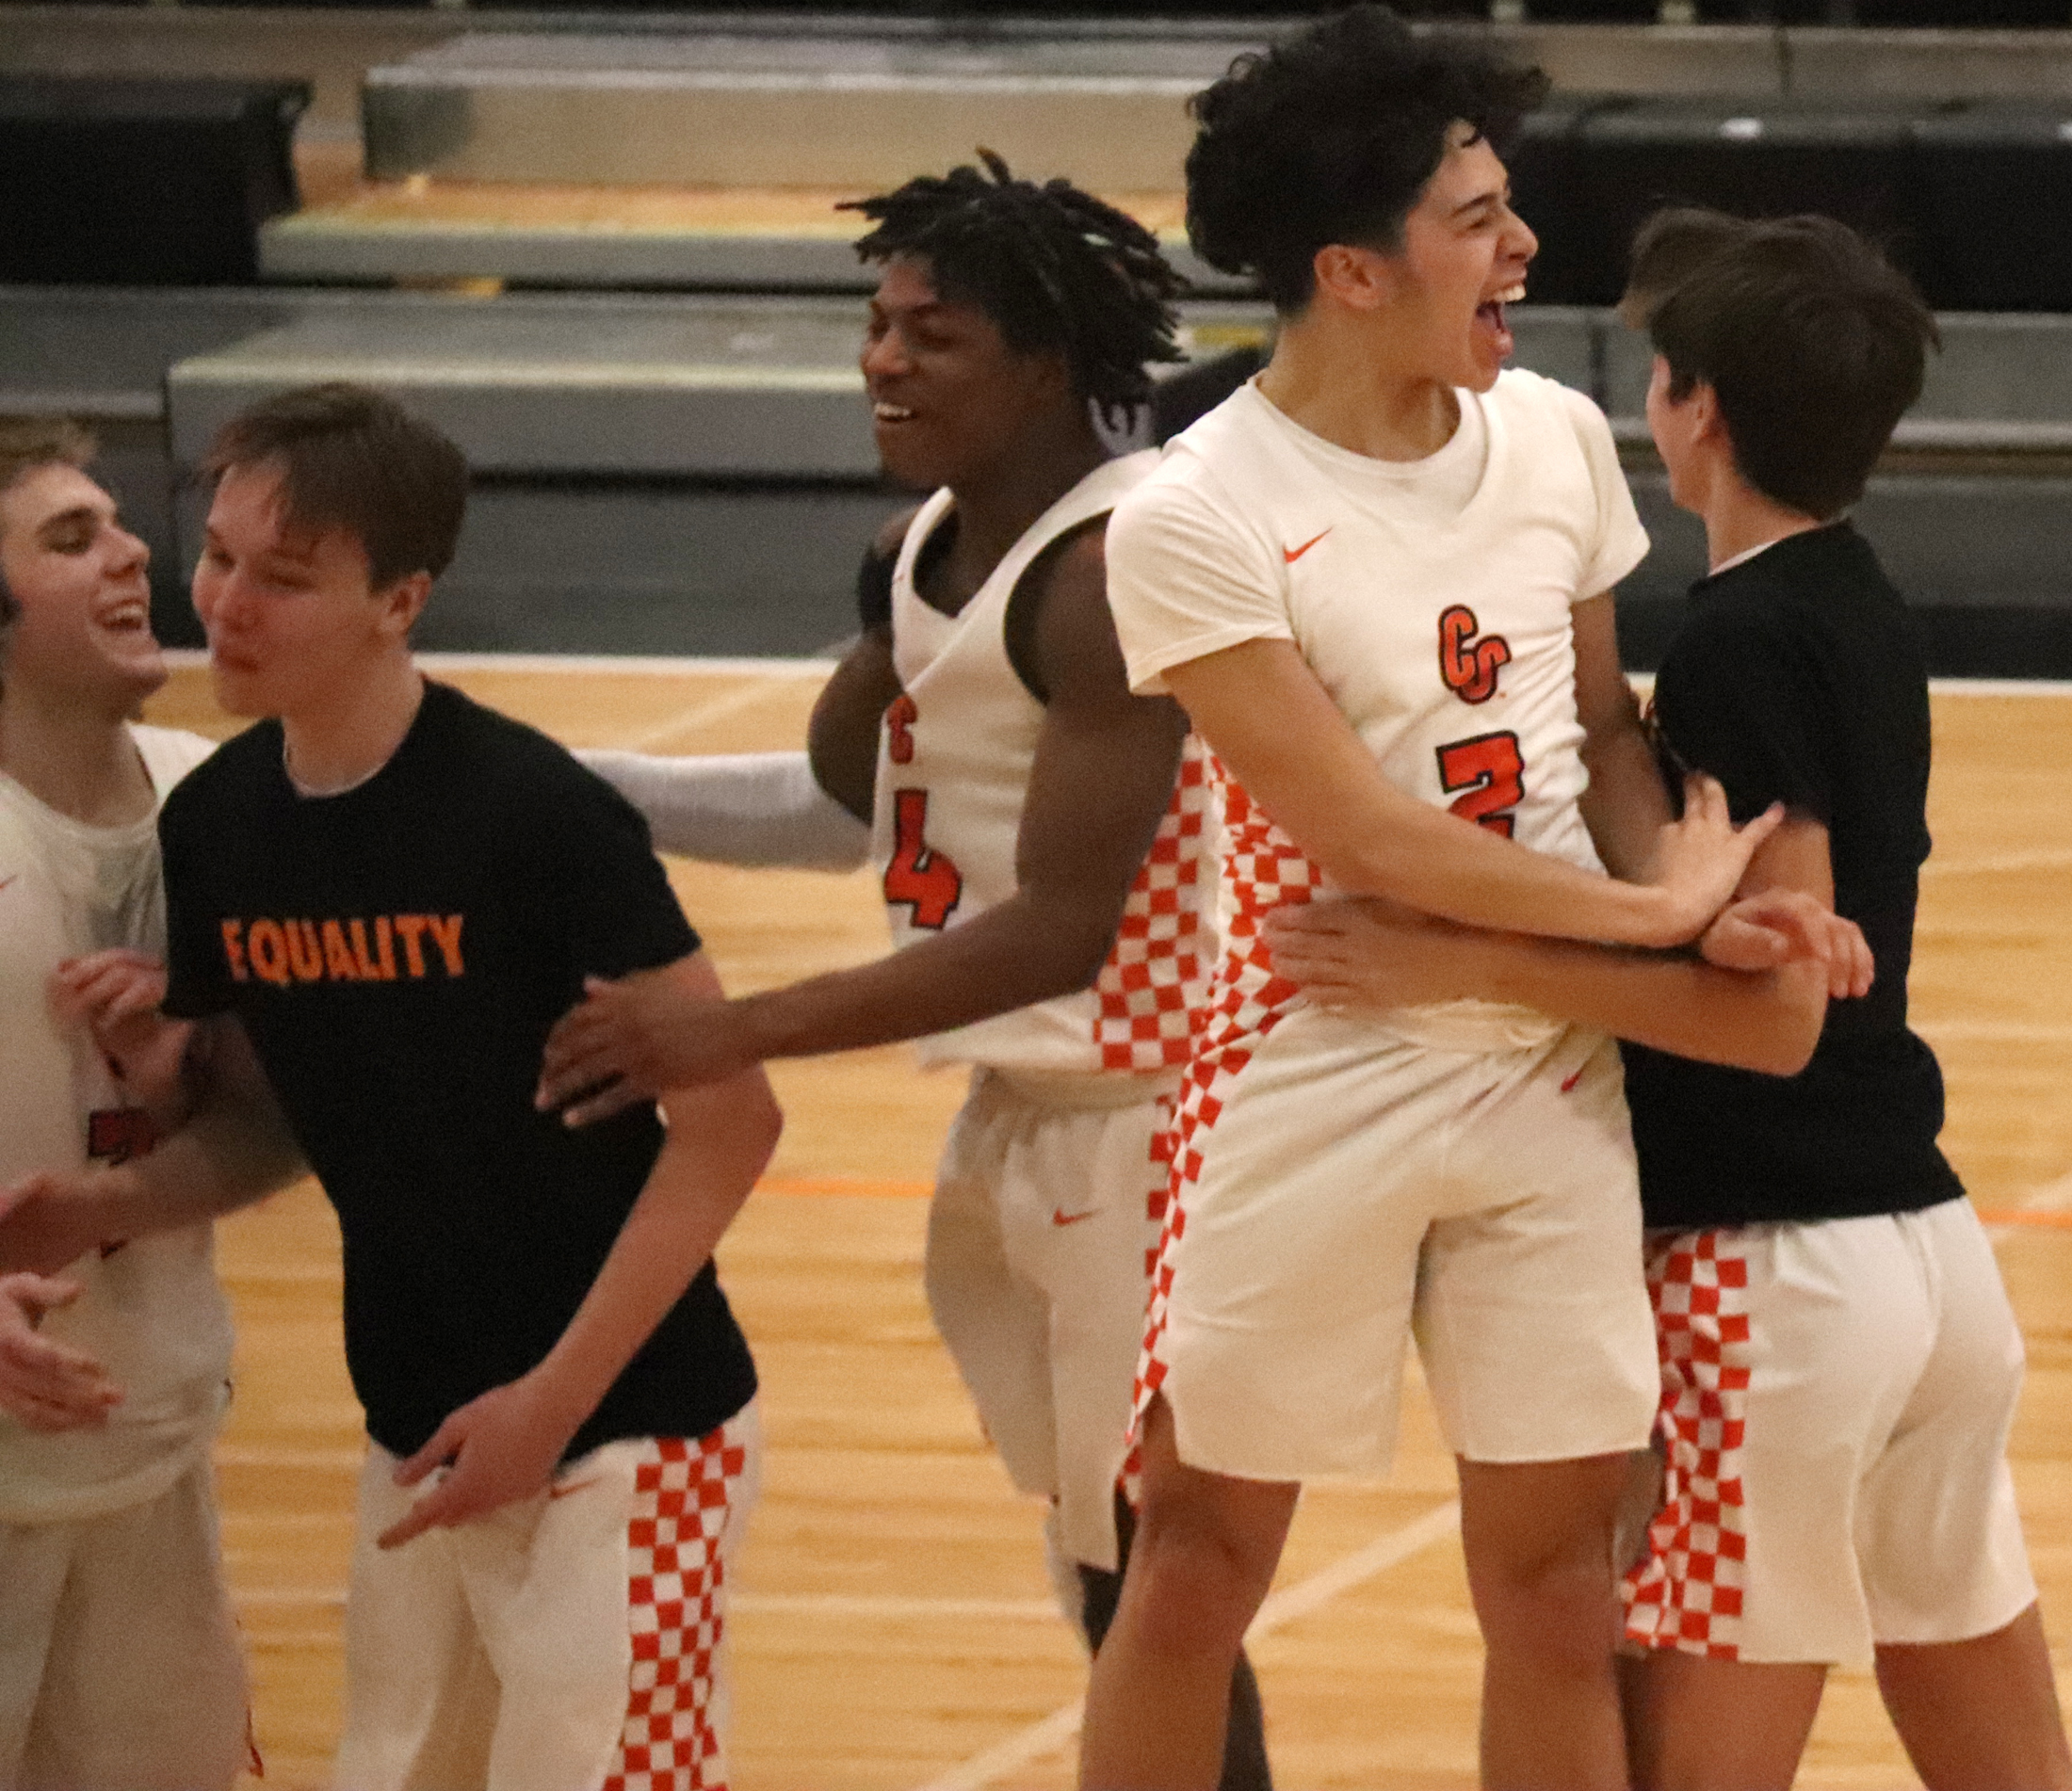 Comets close out regular season with come-from-behind home win (61-58) over Mohawks